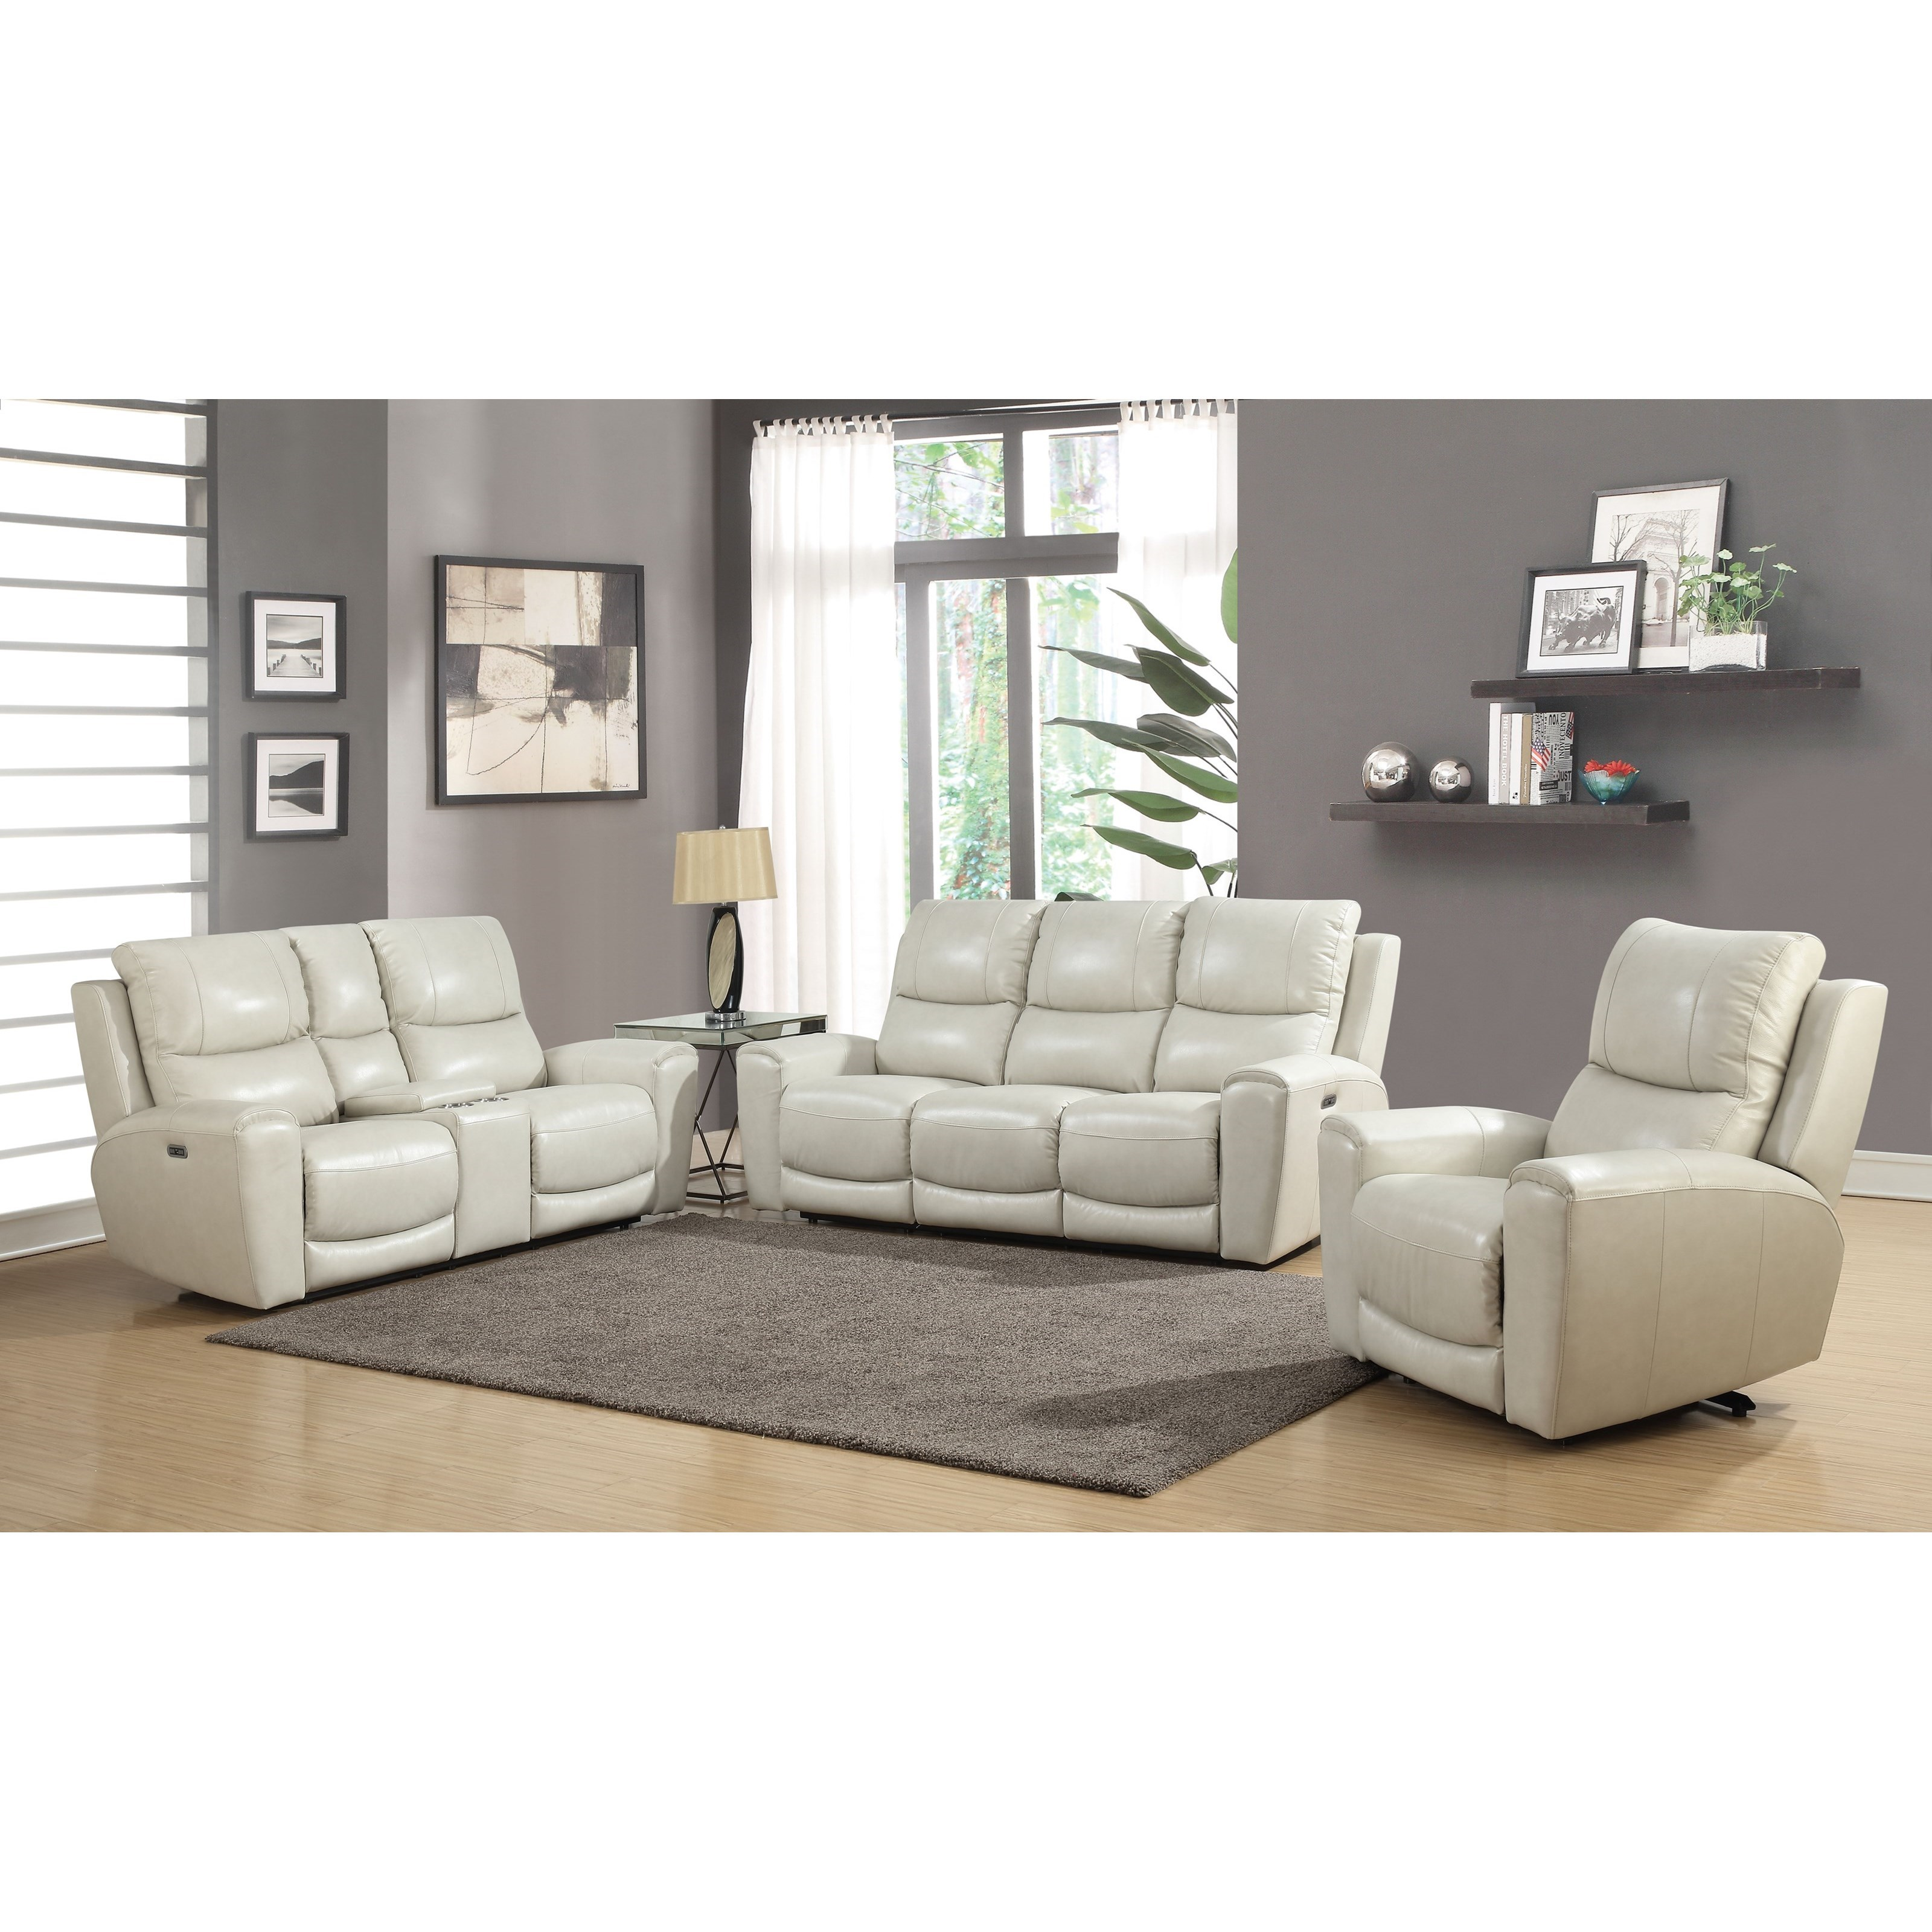 Laurel Reclining Living Room Group by Steve Silver at Van Hill Furniture